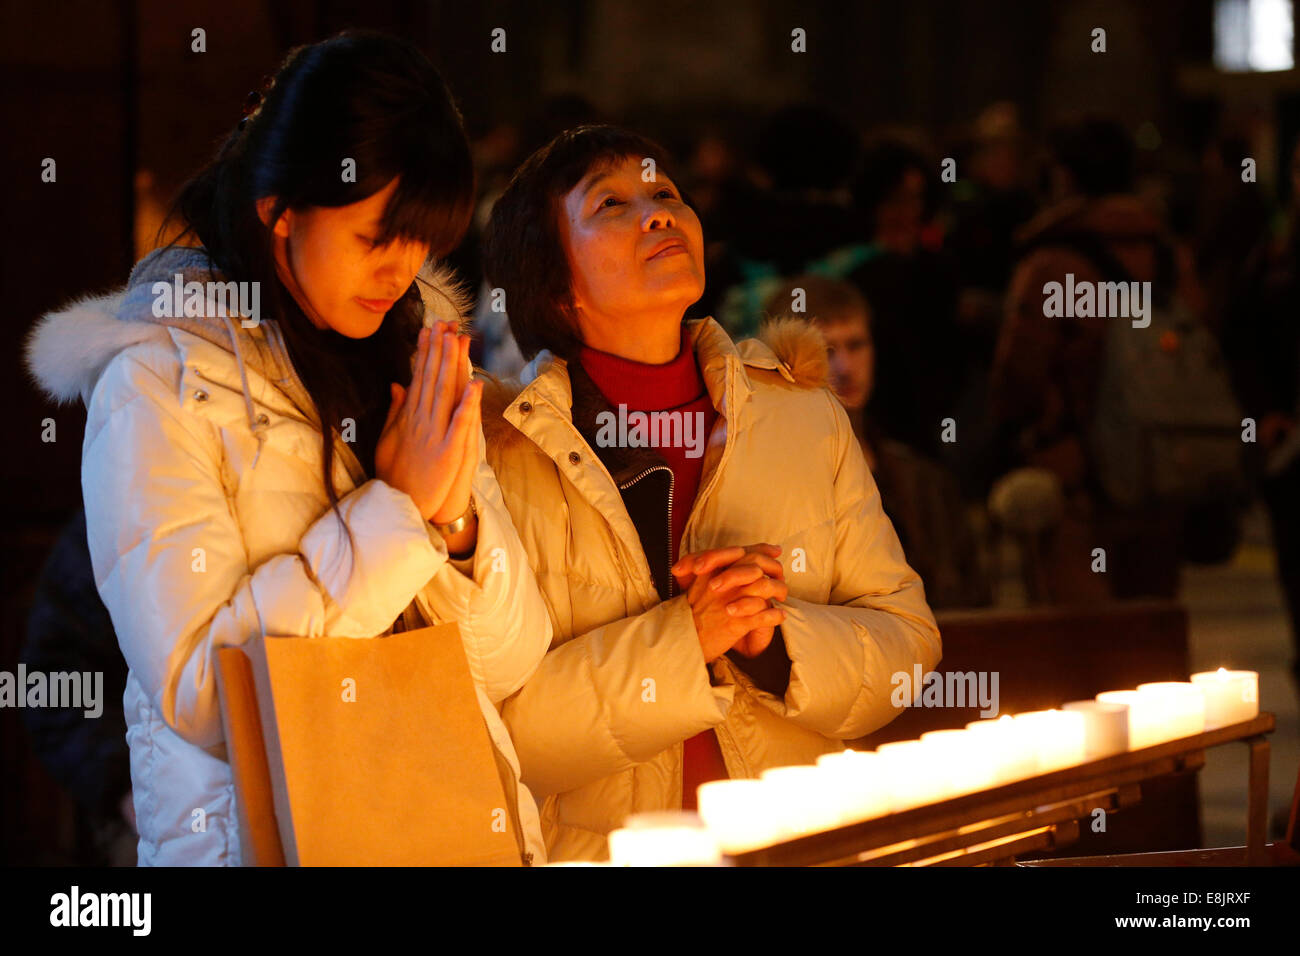 Candles church. Young Christians in a church. - Stock Image